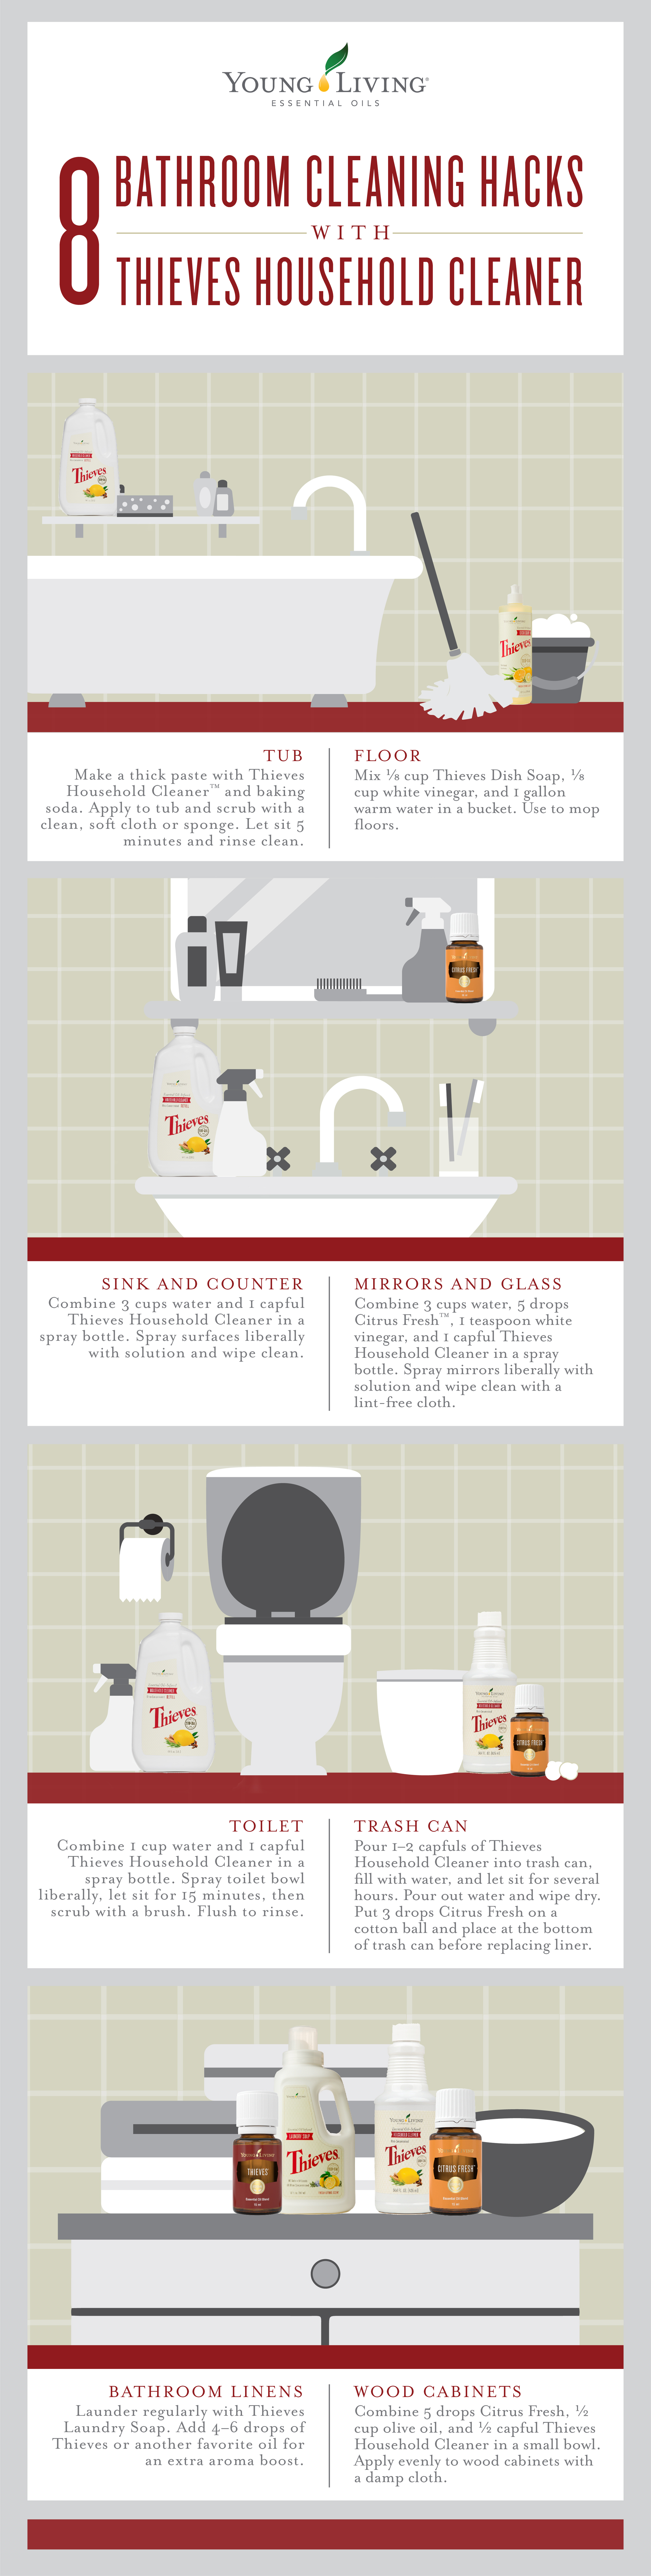 enter thieves household cleaner with our cleaning hacks in the handy infographic below you can replace the harsh chemicals with this powerful - Bathroom Cleaning Hacks